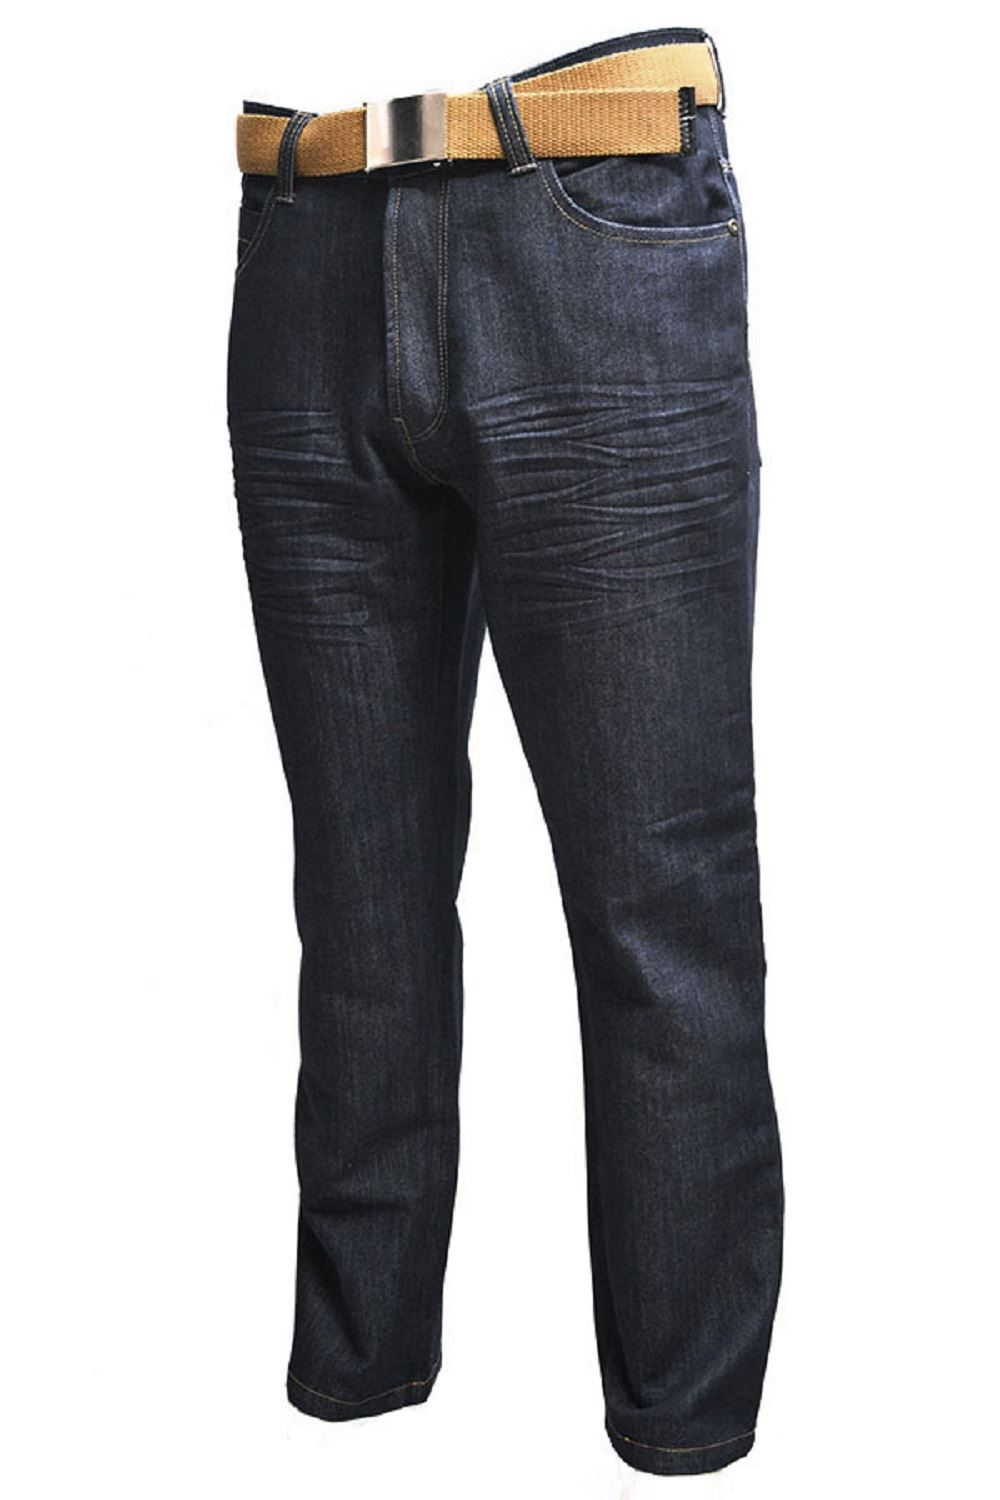 Mens-Classic-Fit-Black-Indigo-Jeans-Kori-By-Creon-Previs thumbnail 11